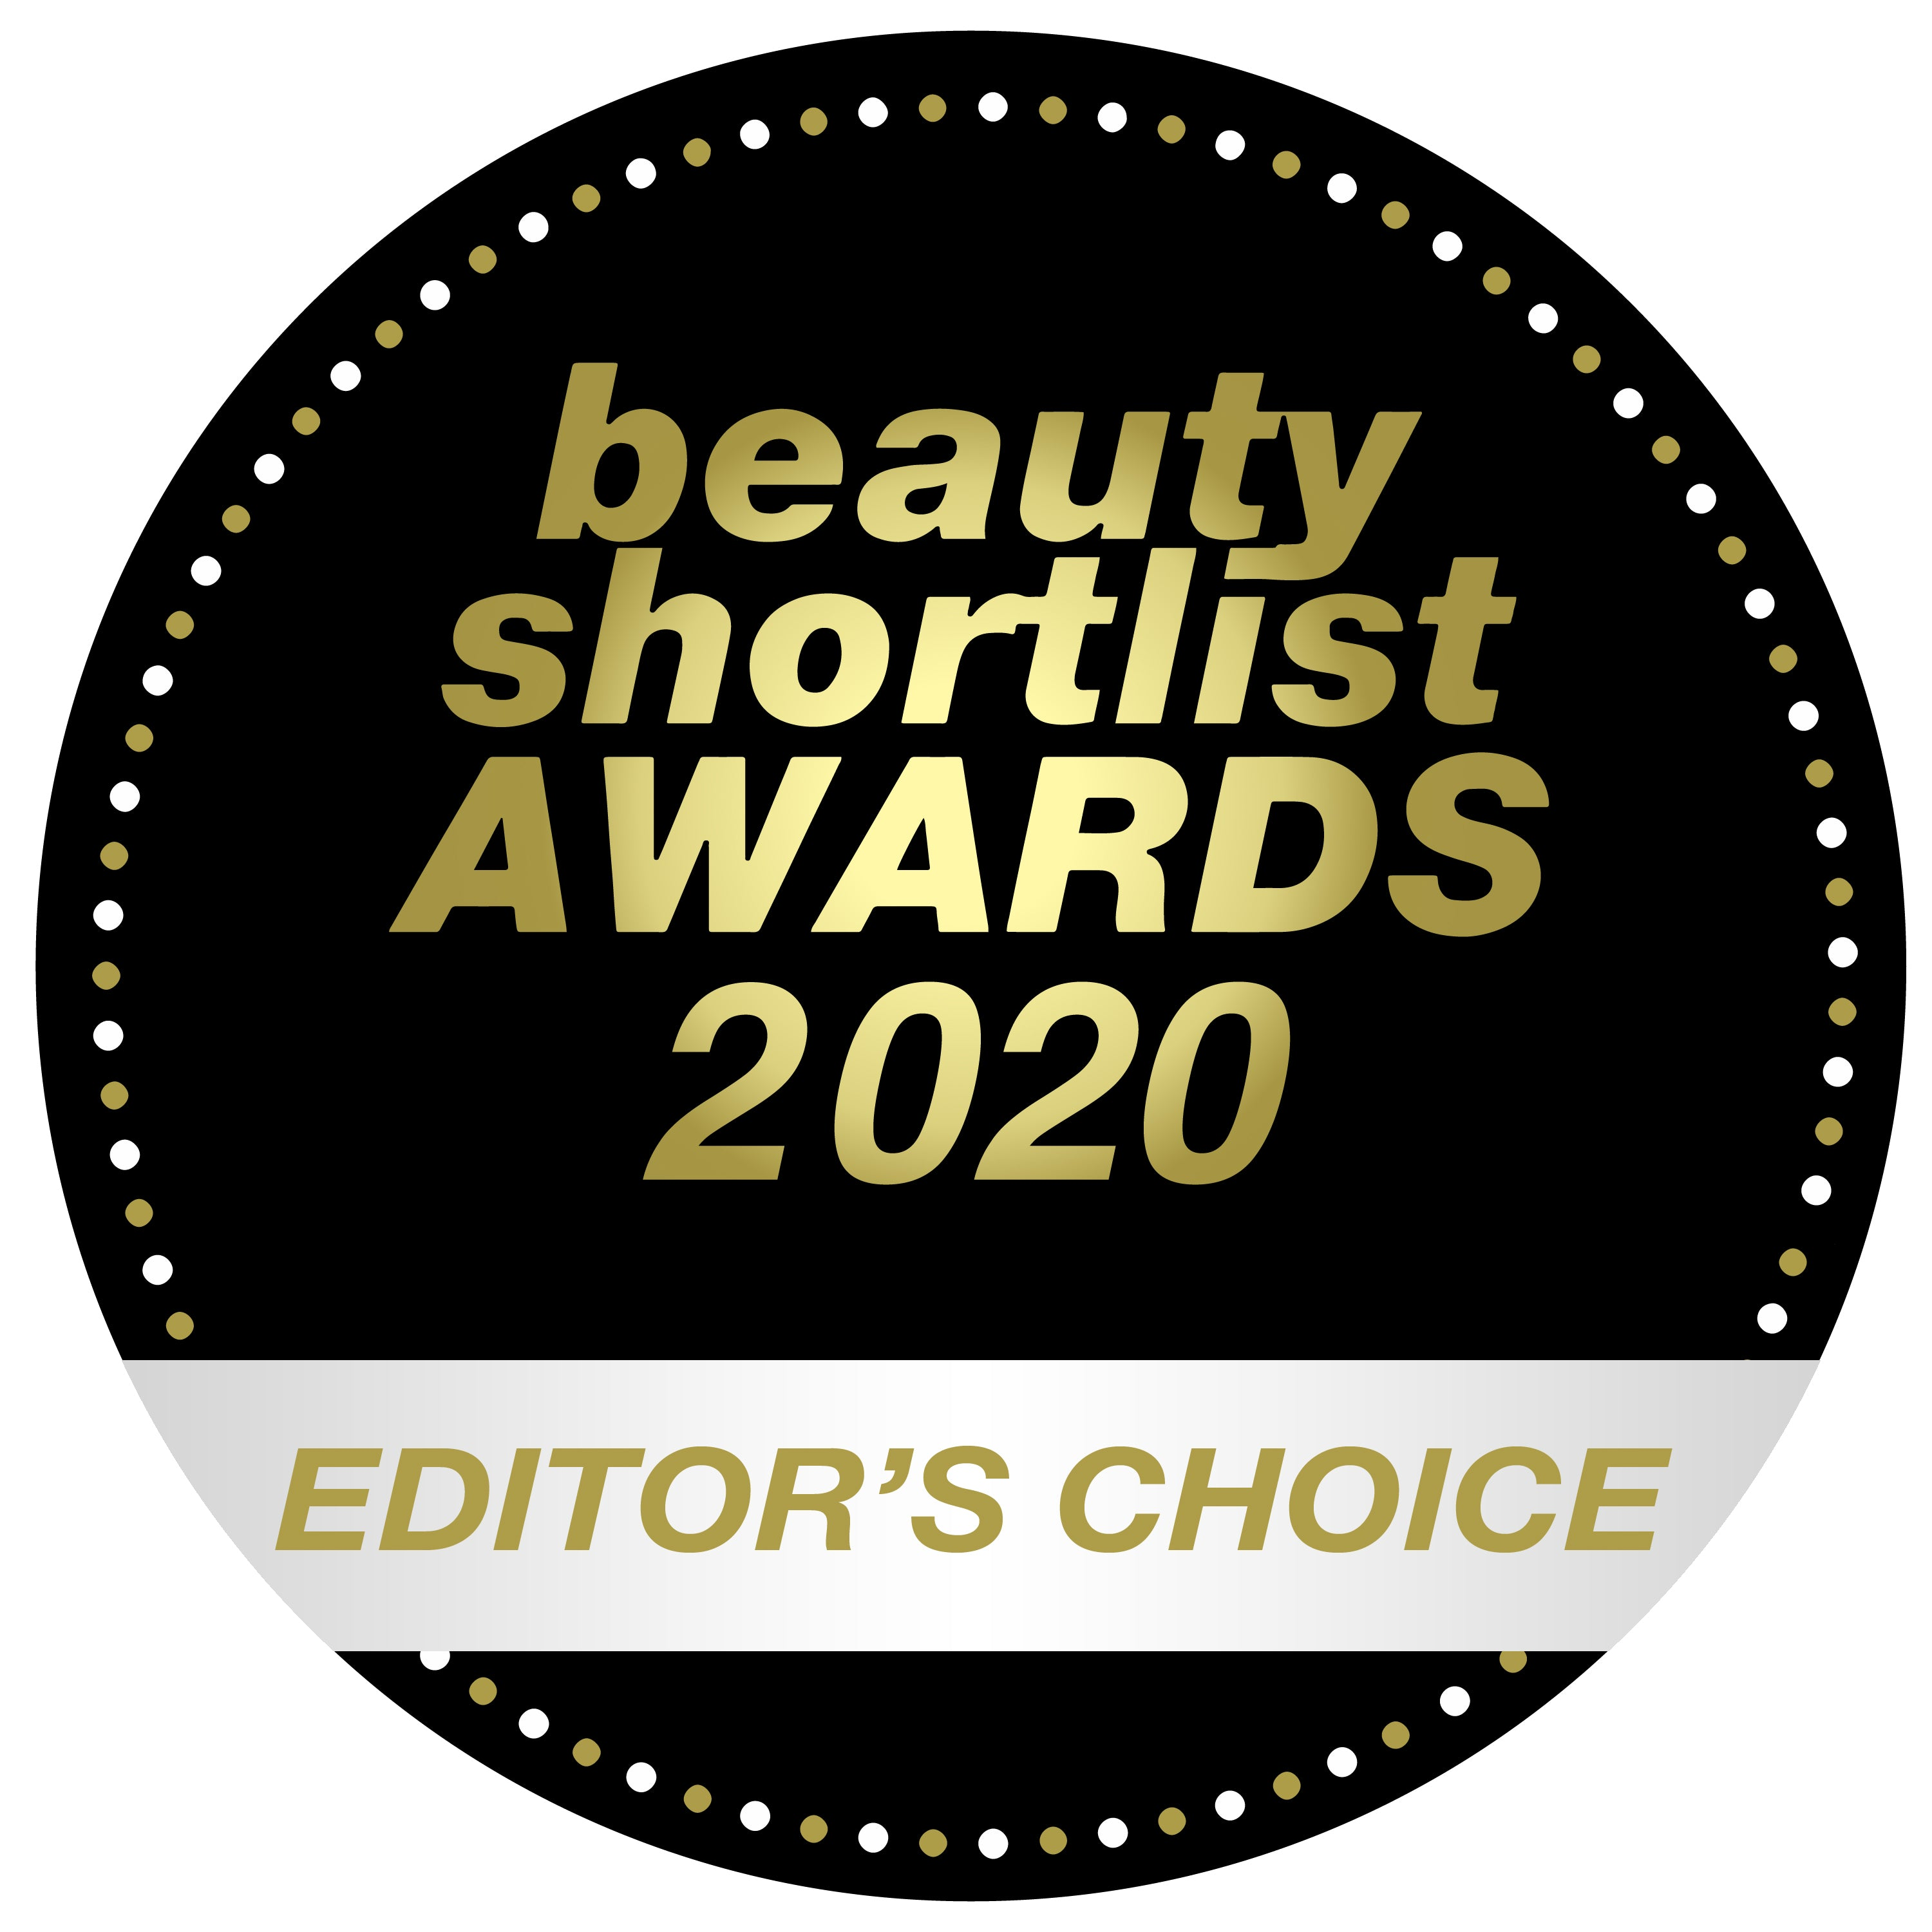 EDITOR'S CHOICE - Beauty Shortlist Awards 2020